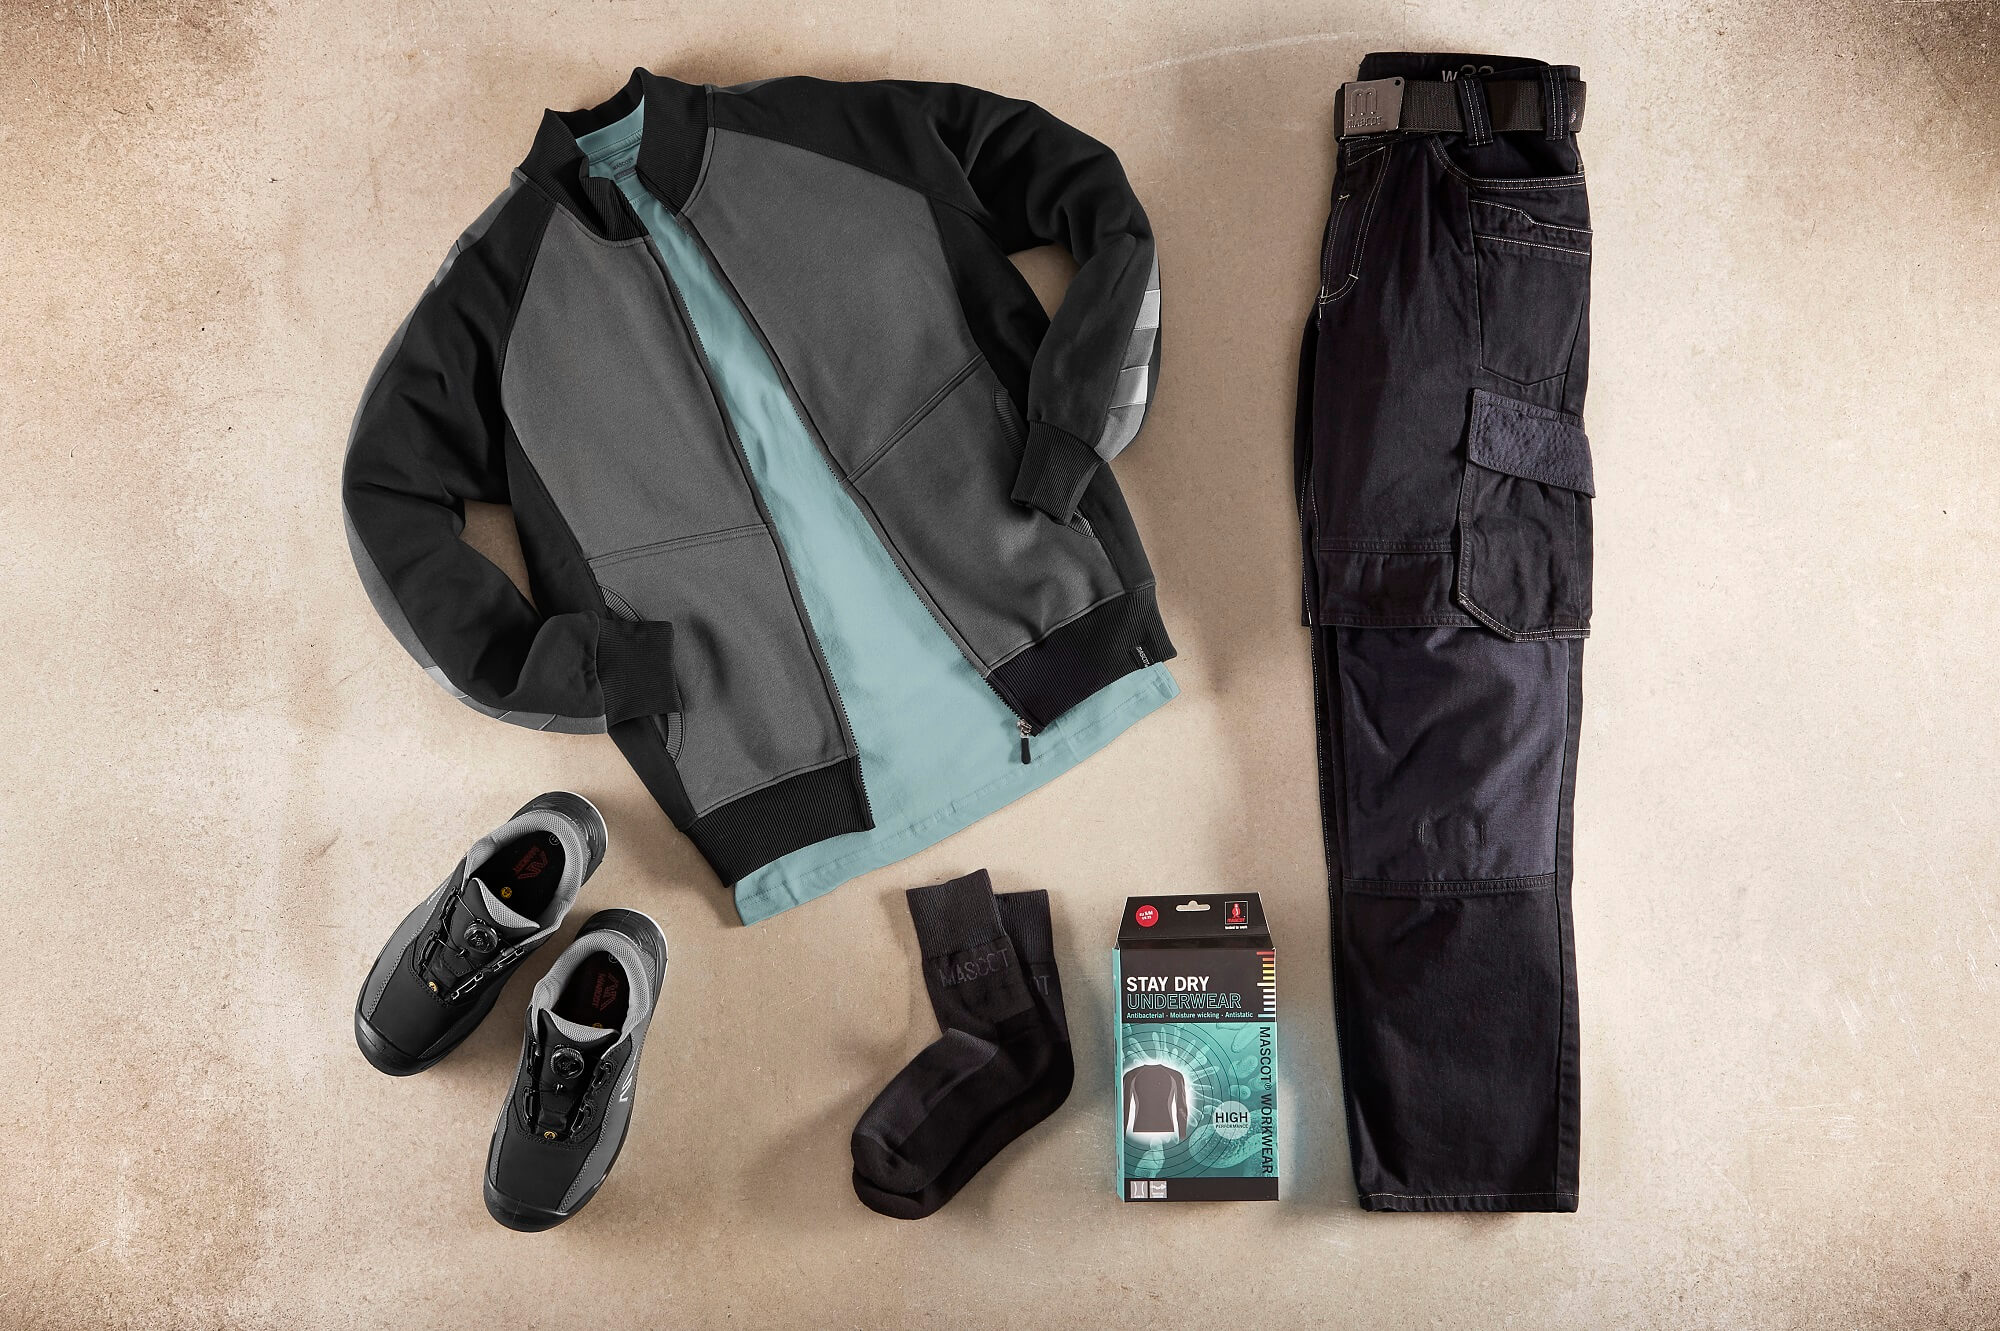 Grey - Zipped Jumper, T-shirt, Work Pants & Safety Shoe - Collage